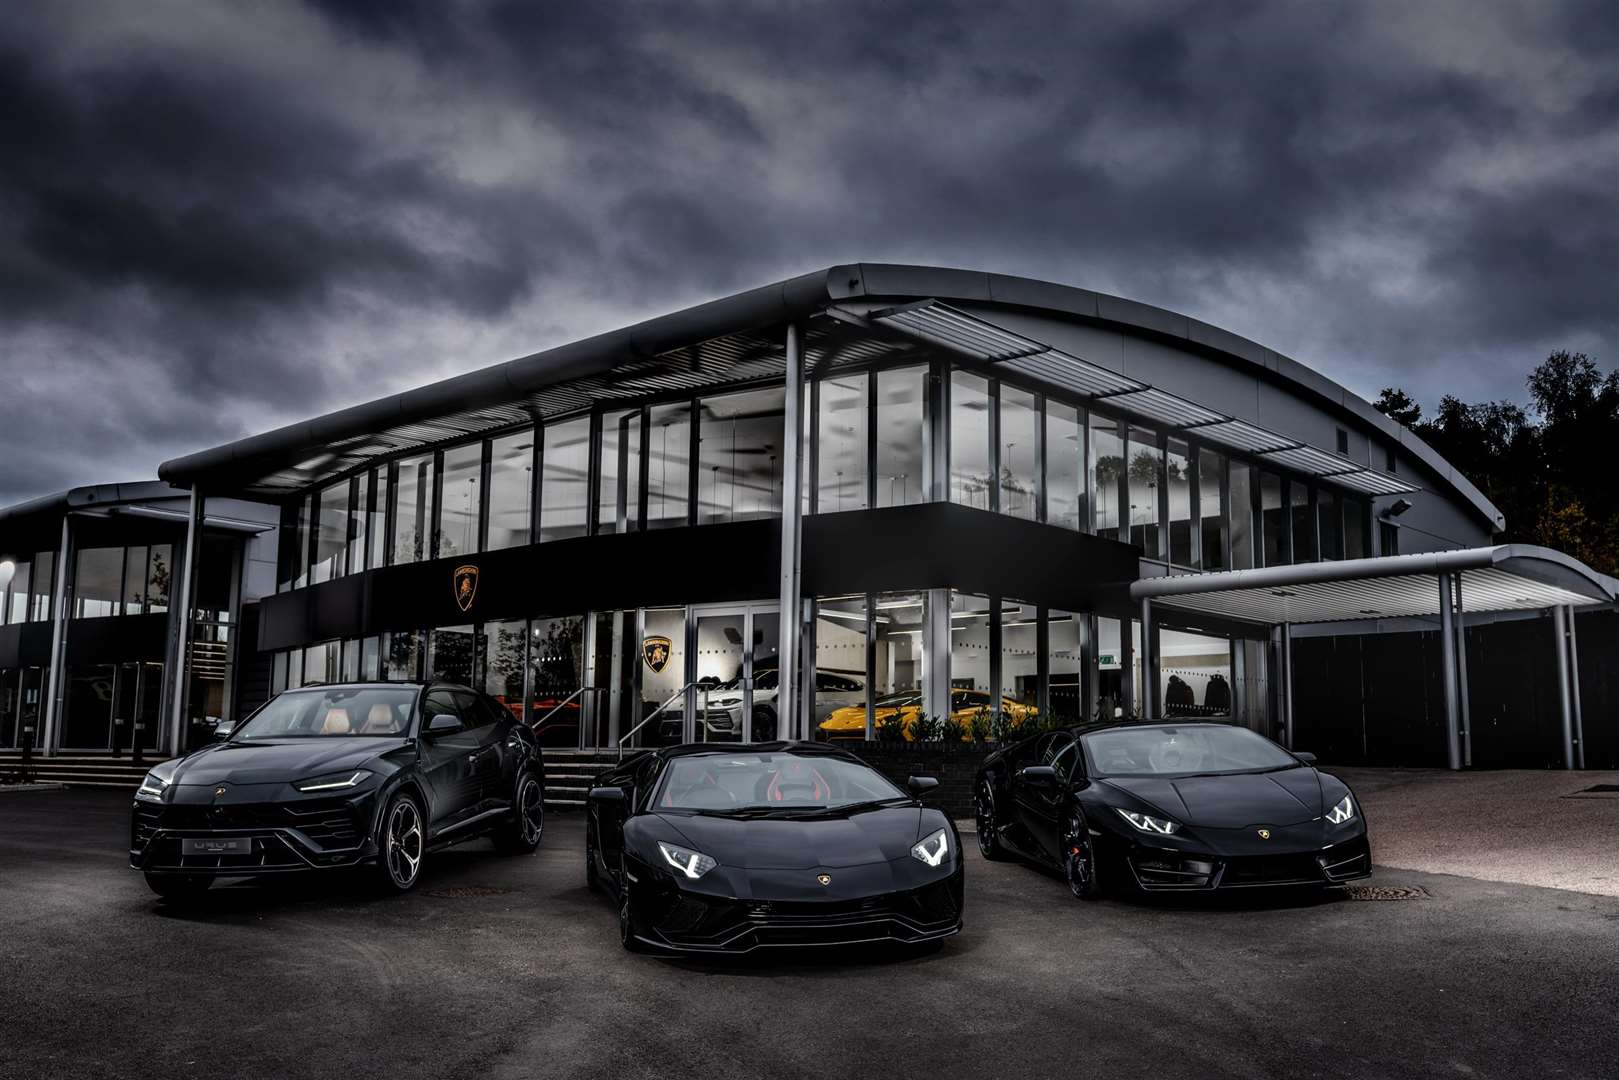 Lamborghini has opened its showroom in Tunbridge Wells (5297157)